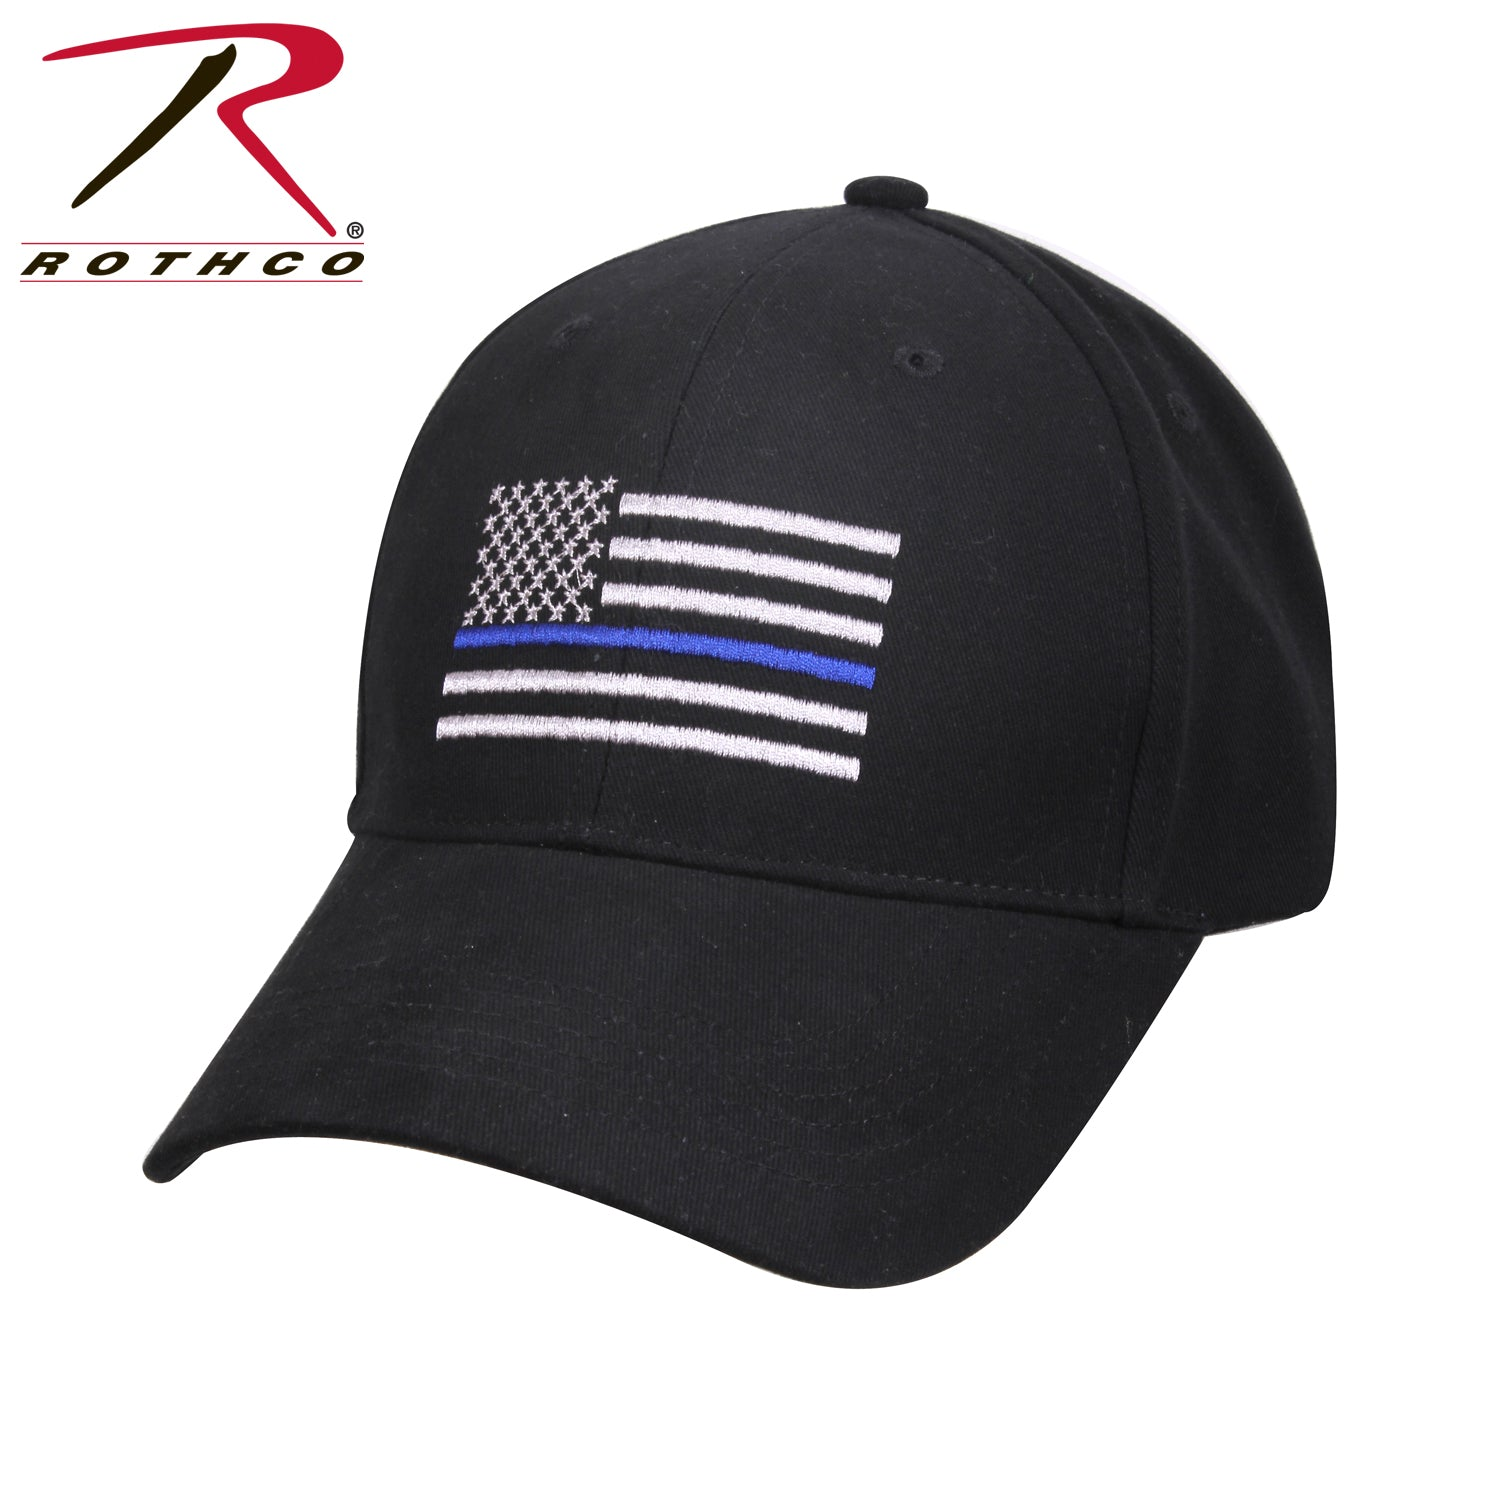 Rothco Thin Blue Line Flag Low Profile Cap - red-diamond-uniform-police-supply